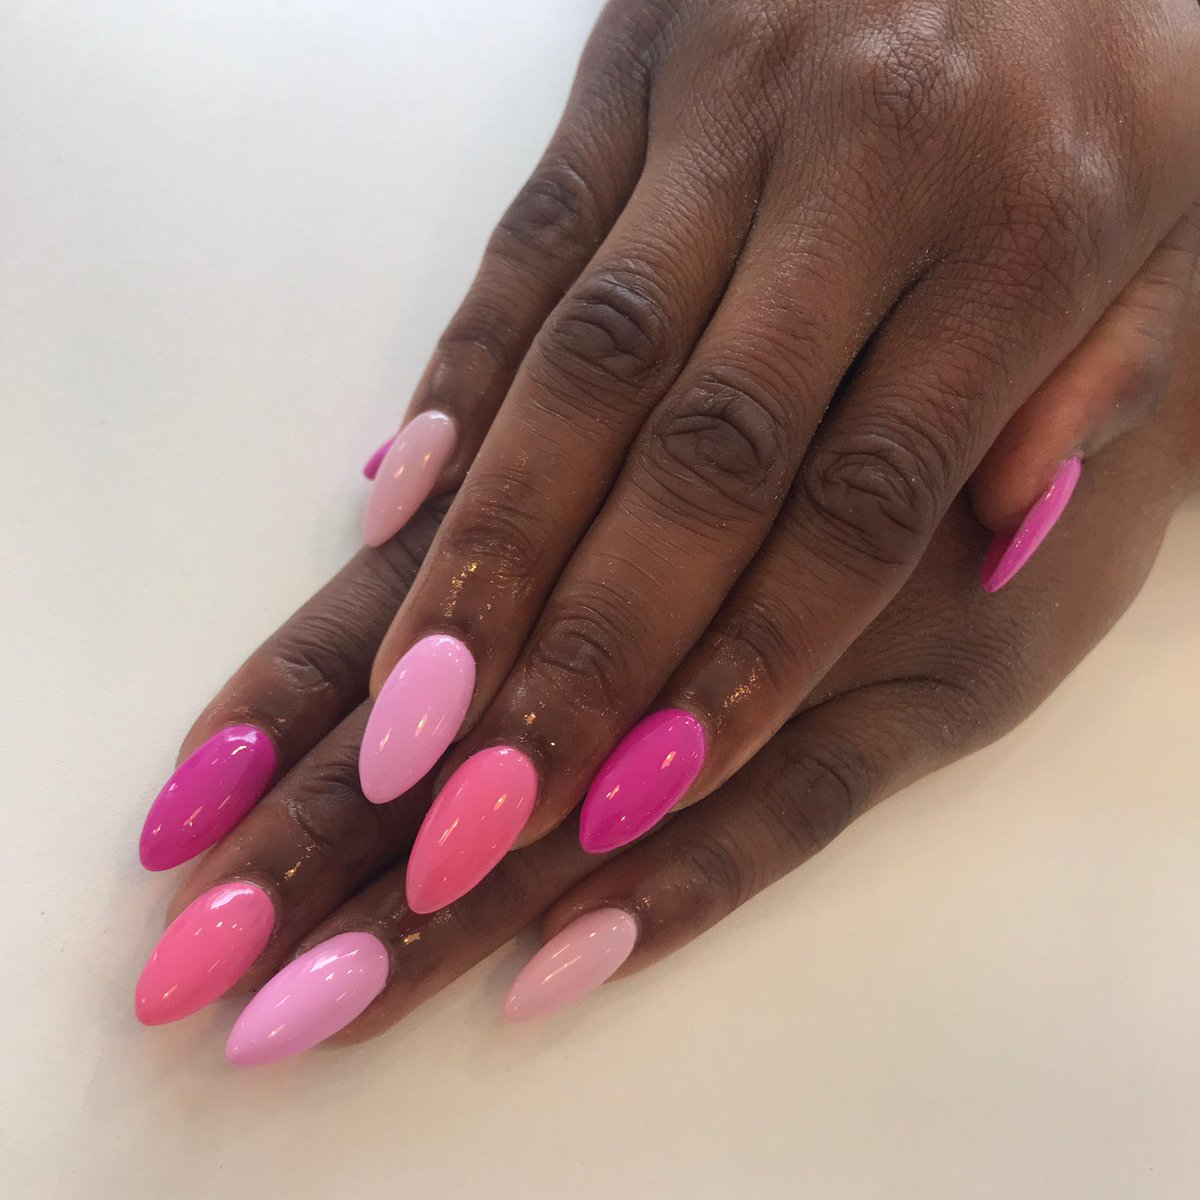 All Different Shades Of Pink Acrylic Nails Nail And Manicure Trends